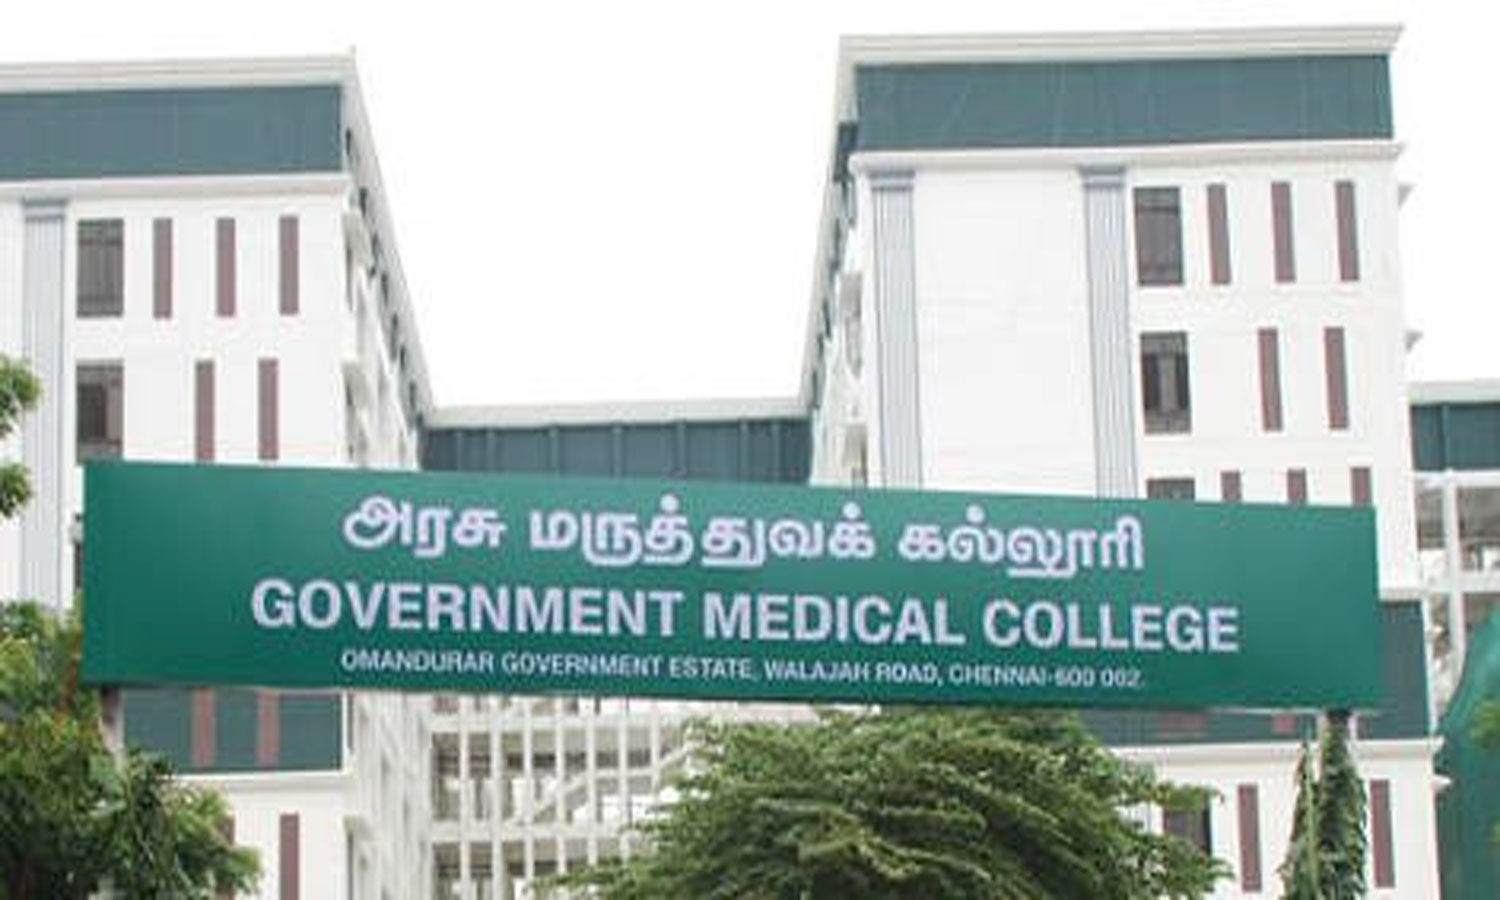 Tamil Nadu: Foundation of Dindigul Government medical college laid